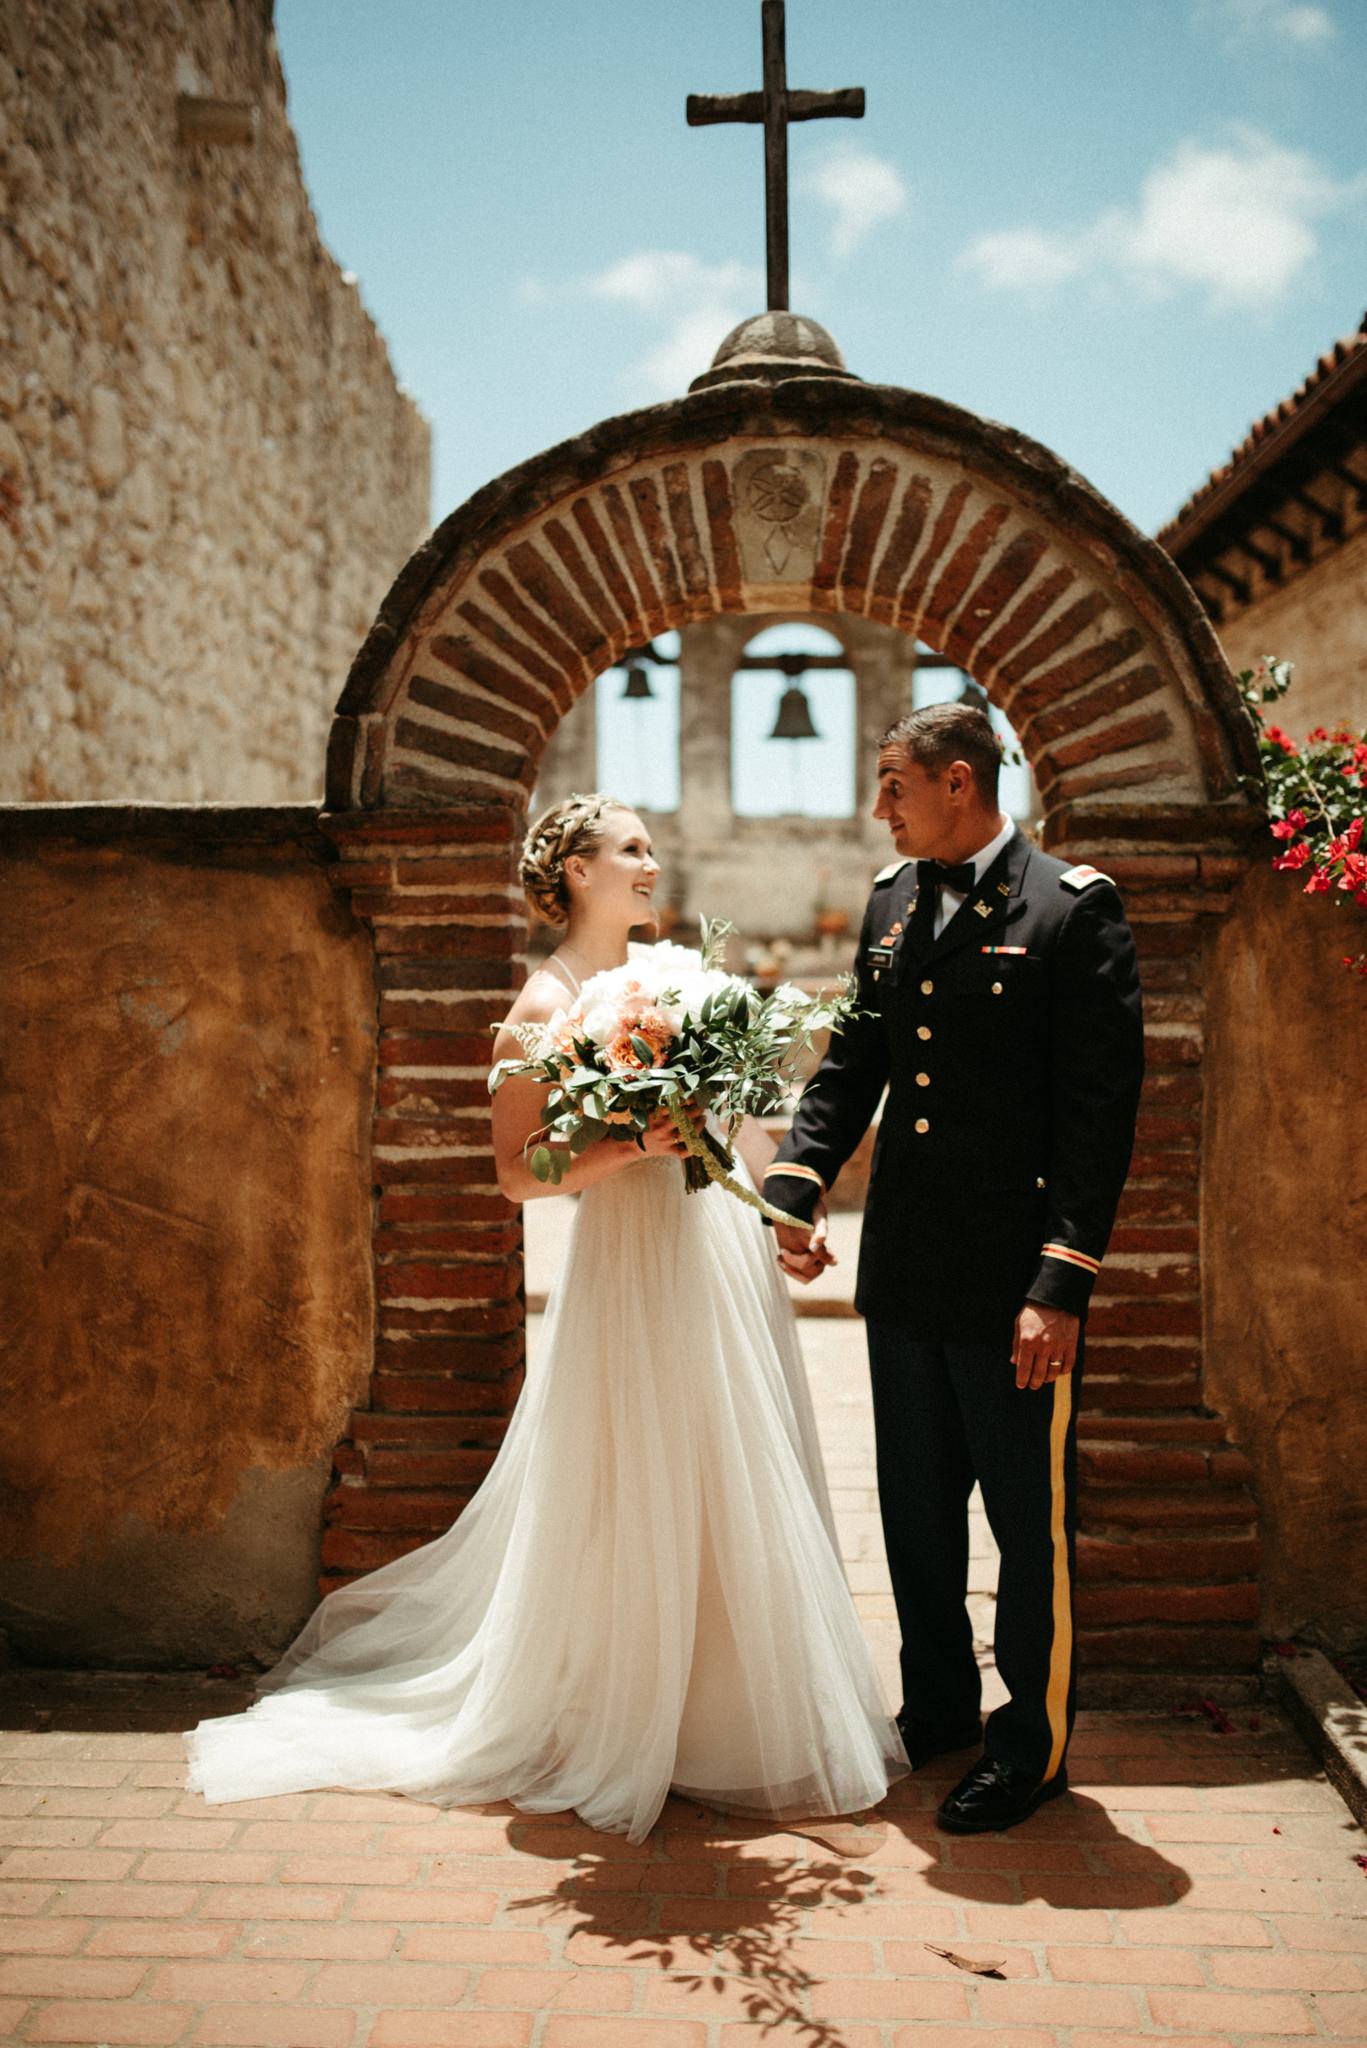 Zach and Rosalie - Franciscan Garden Wedding - San Juan Capistrano - The Mission - Southern California Wedding Photographer-5239.jpg